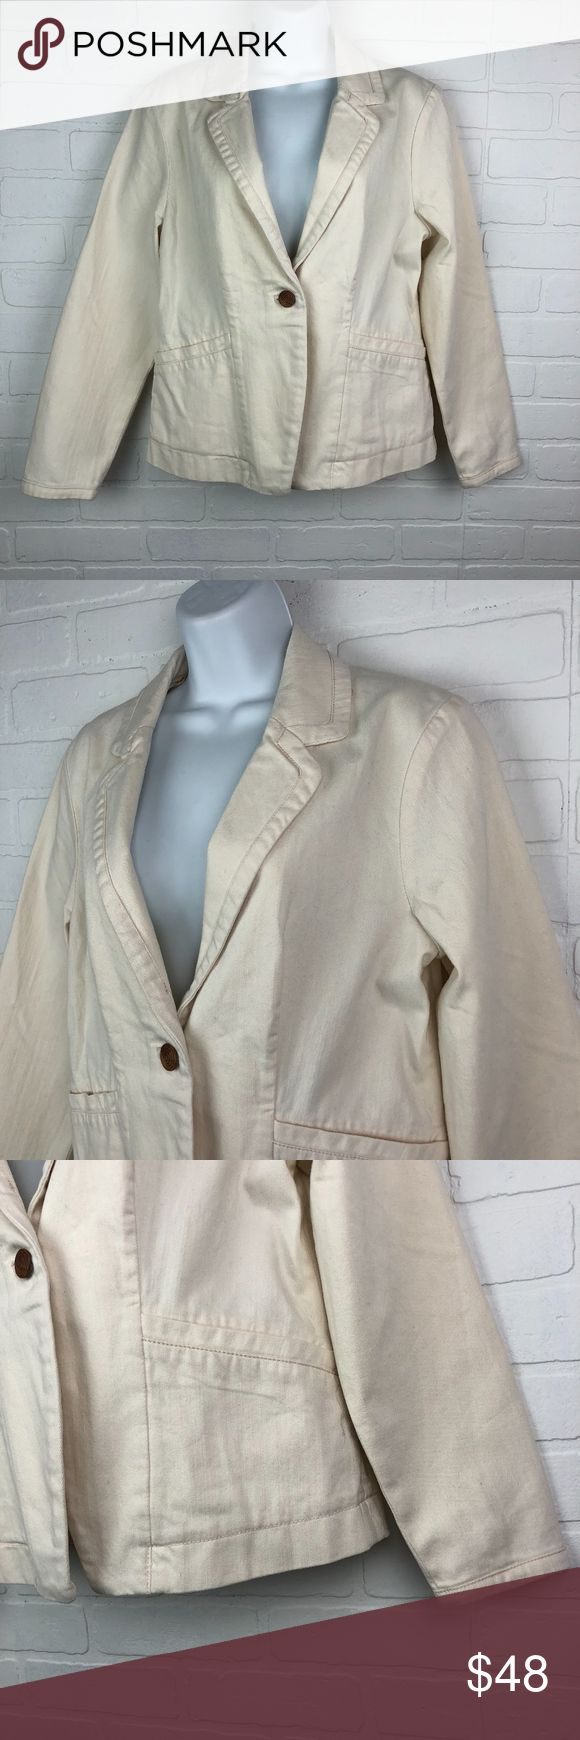 Anthropologie Cartonnier 10 Elbow Patch Jacket Anthropologie Cartonnier 10 Elbow Patch Jacket  Size 10 New with tags Adorable  armpit to armpit: 20 inches length (back neck seam to bottom hem):  22.5 inches sleeve:  23.25 inches 99% cotton 1% spandex made in China  This jacket is everything for Spring and Summer!  I ship fast. Why not create a bundle? Thank you for shopping my closet! Anthropologie Jackets & Coats Blazers